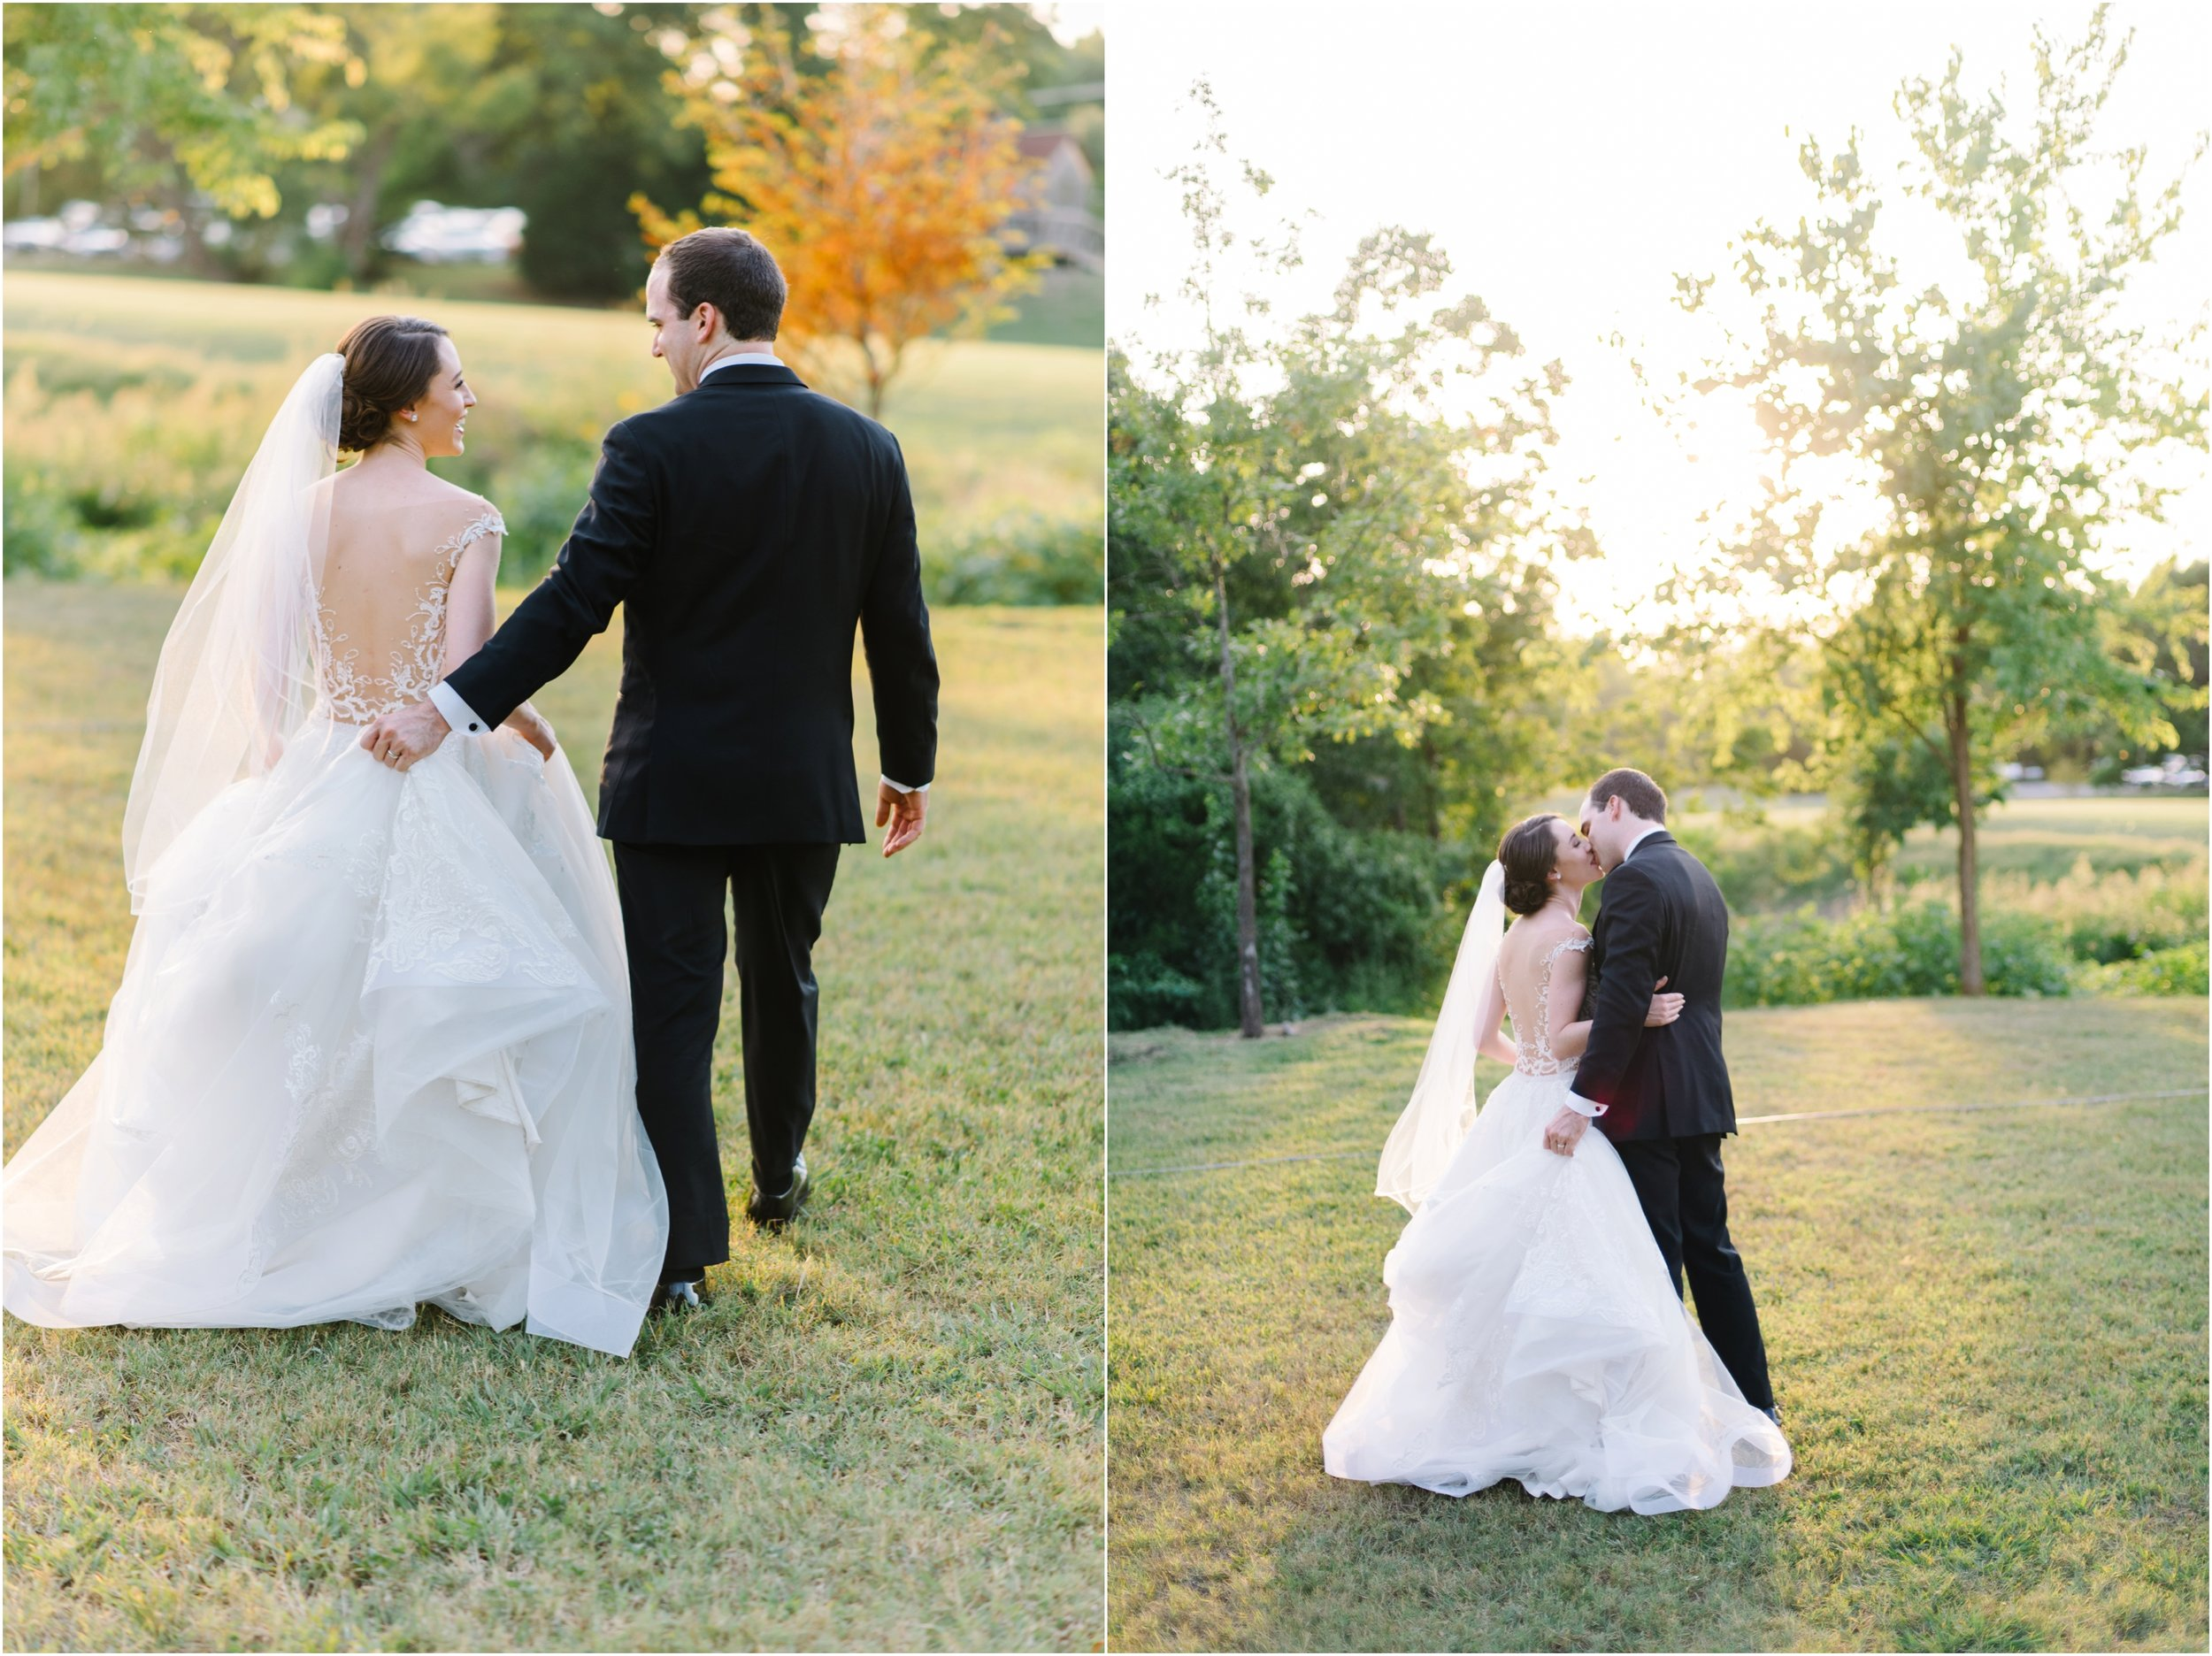 dallasweddingphotographer_fortworthweddingphotographer_texasweddingphotographer_mattandjulieweddings_whiterocklakewedding_KayleighClay_0040.jpg